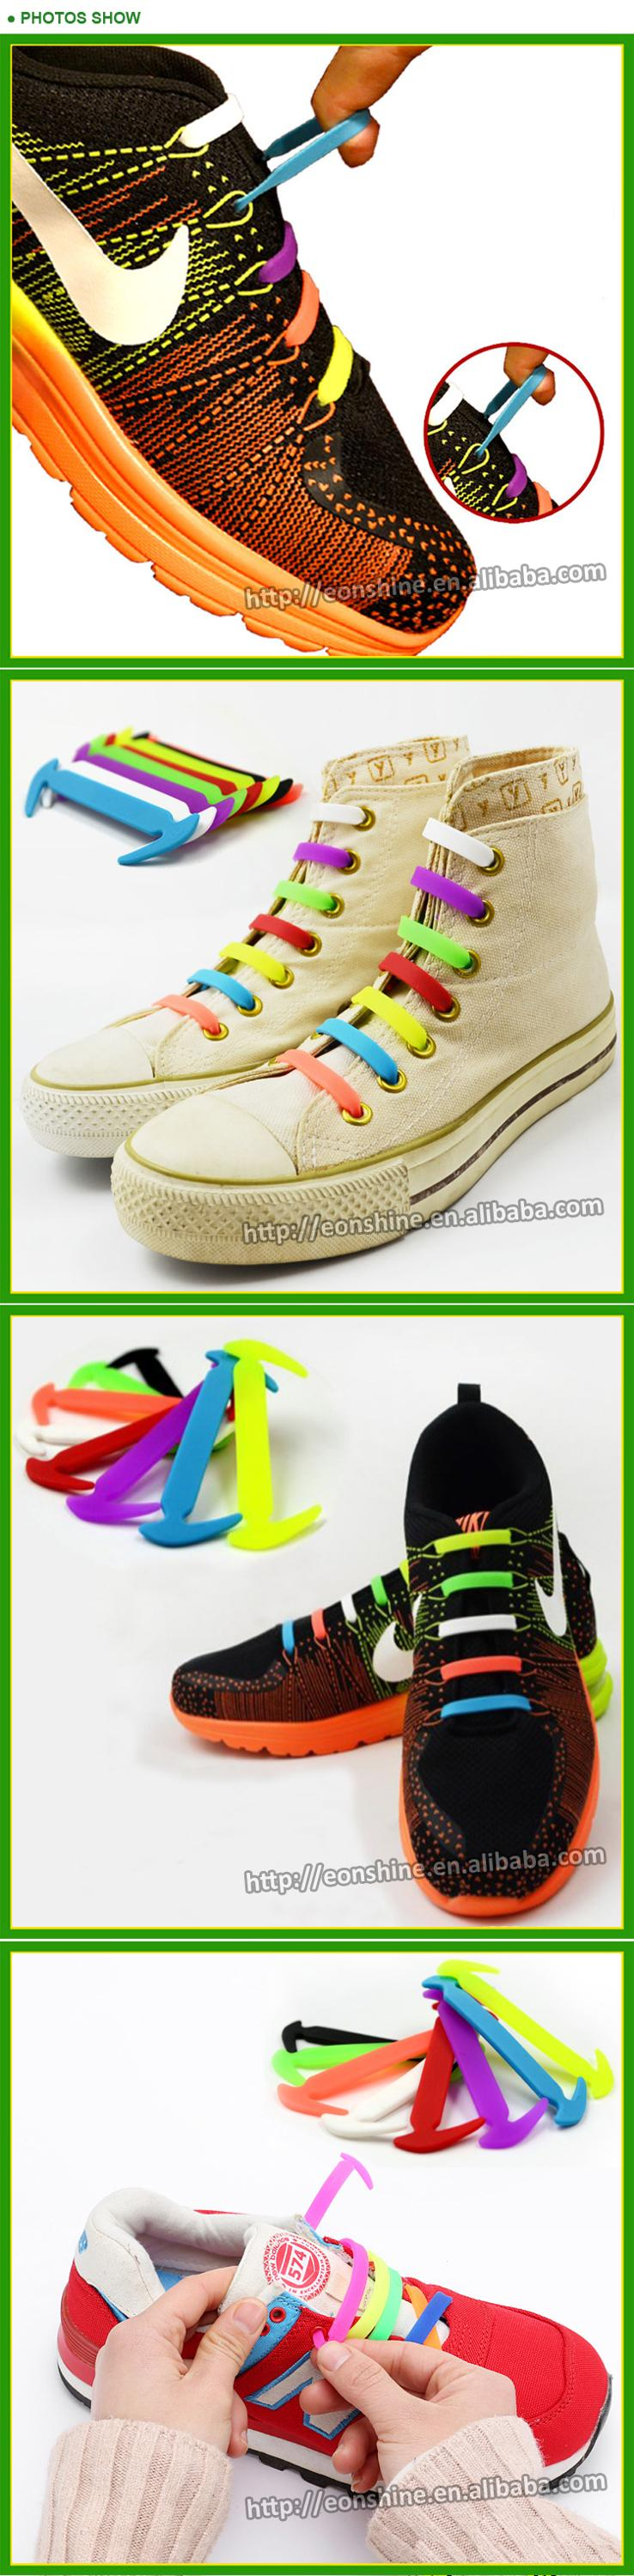 2018 No Tie Shoelaces Elastic Lock Shoe Laces Silicone Shoelaces for Running Shoes